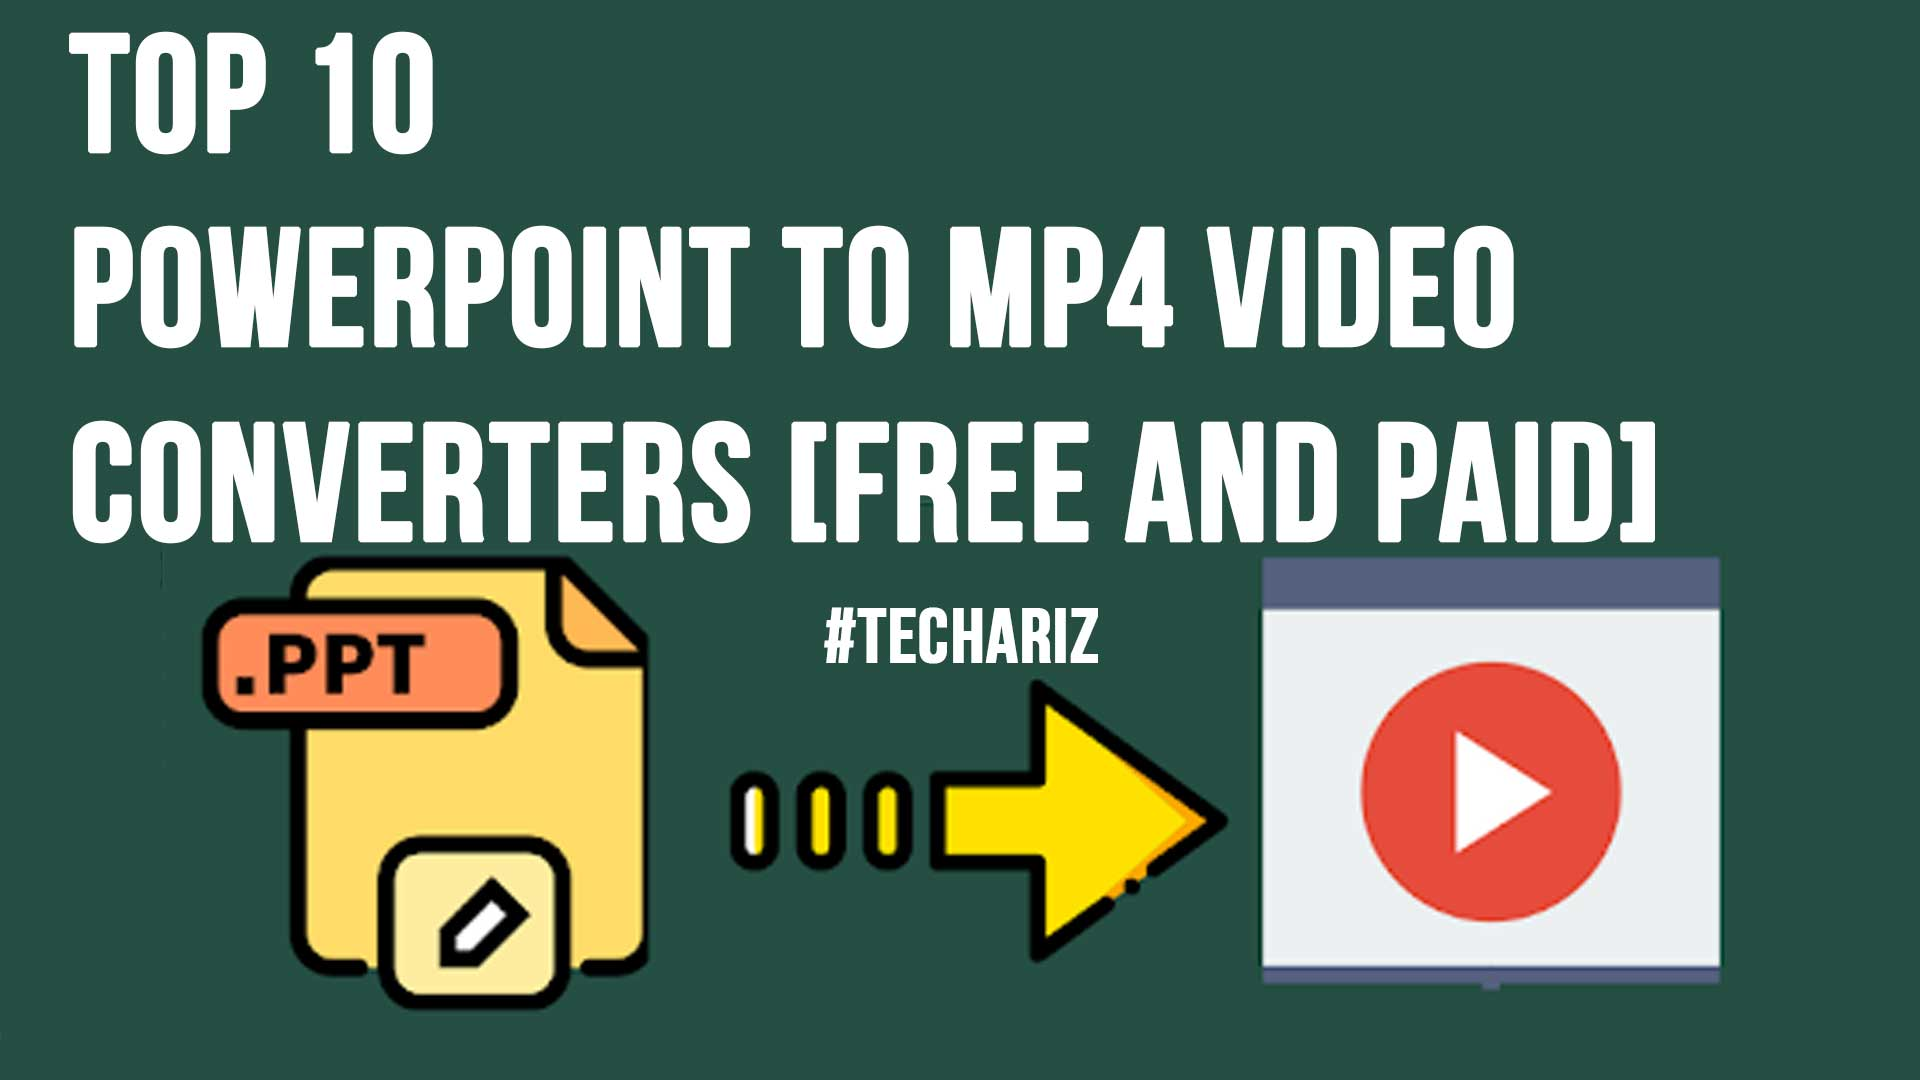 Top 10 PowerPoint to Mp4 Video Converters Free and Paid